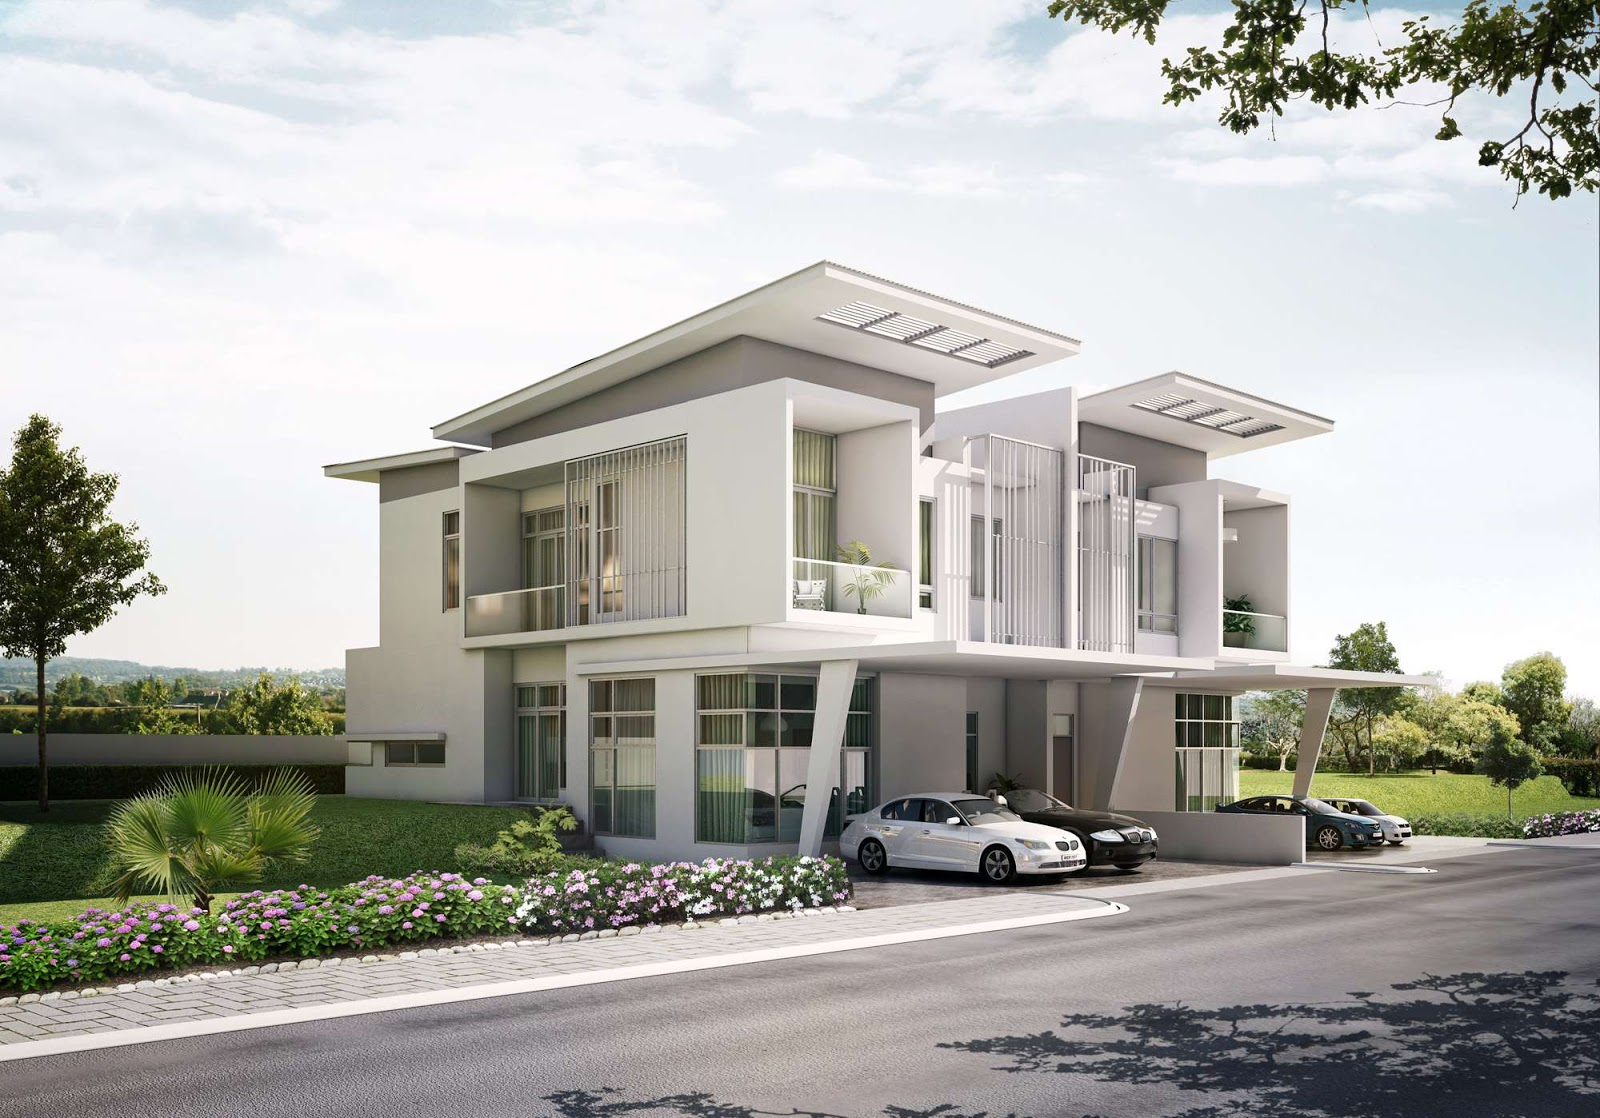 New home designs latest singapore modern homes exterior for Contemporary house exterior